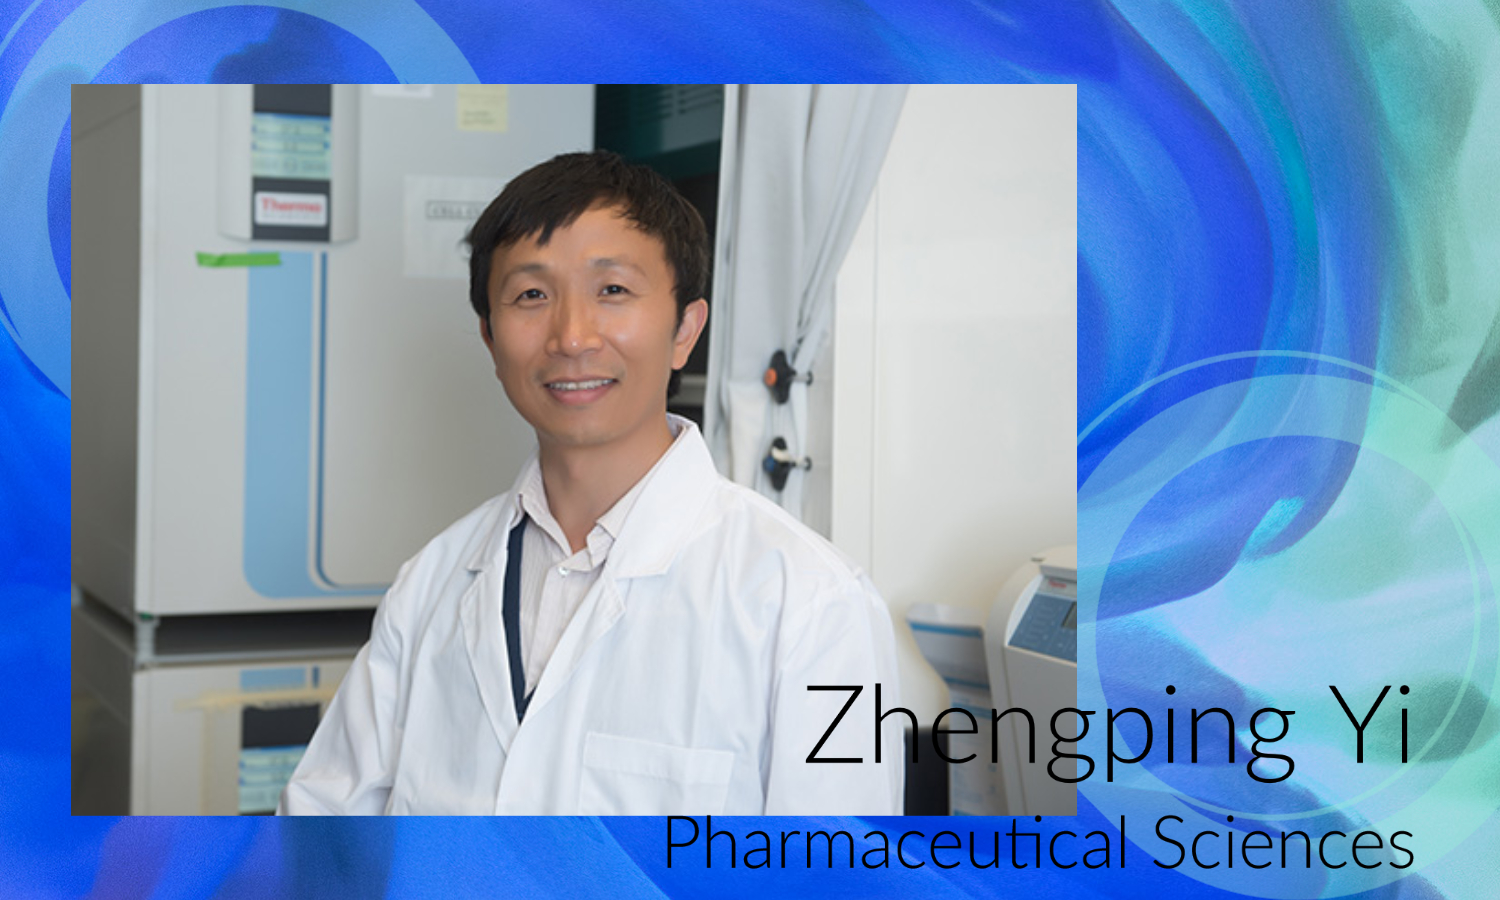 Zhengping Yi, Ph.D., professor of pharmaceutical sciences, received a four-year, $1.5 million grant from the National Institutes of Health to find new treatment for diabetic wound healing